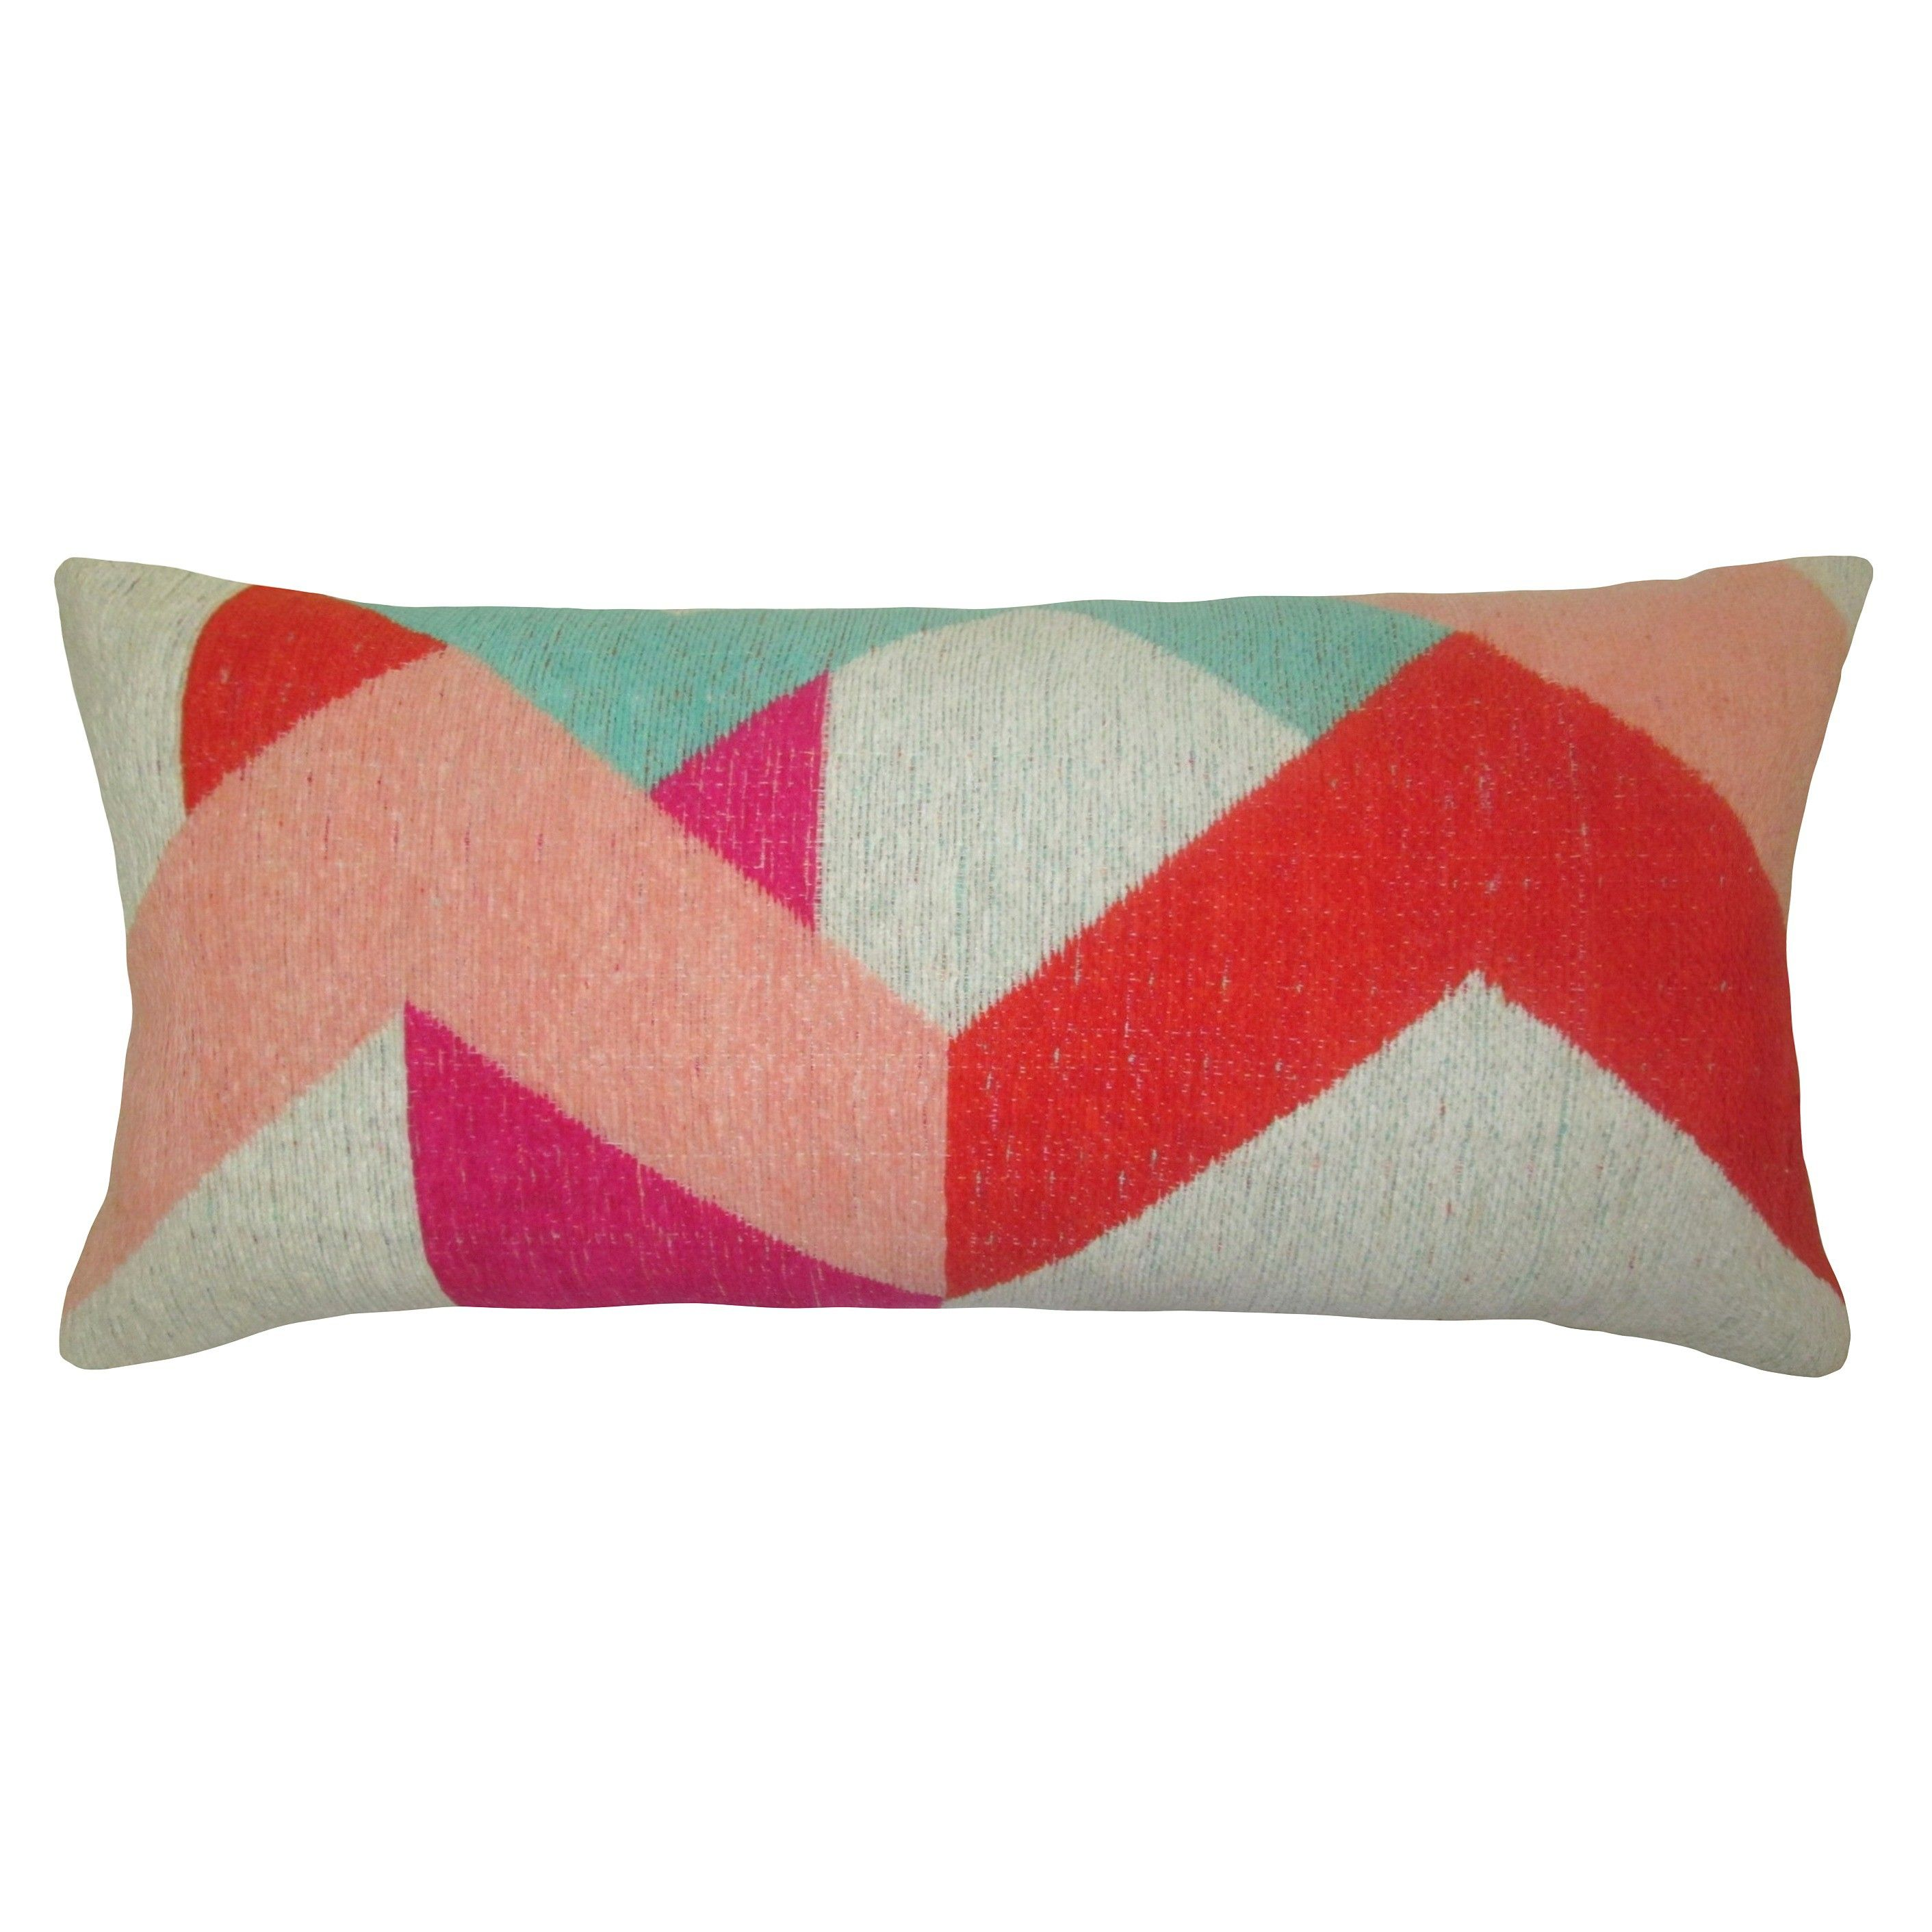 The Yarn Dyed Lumbar Pillow in Pink from Threshold is fortable